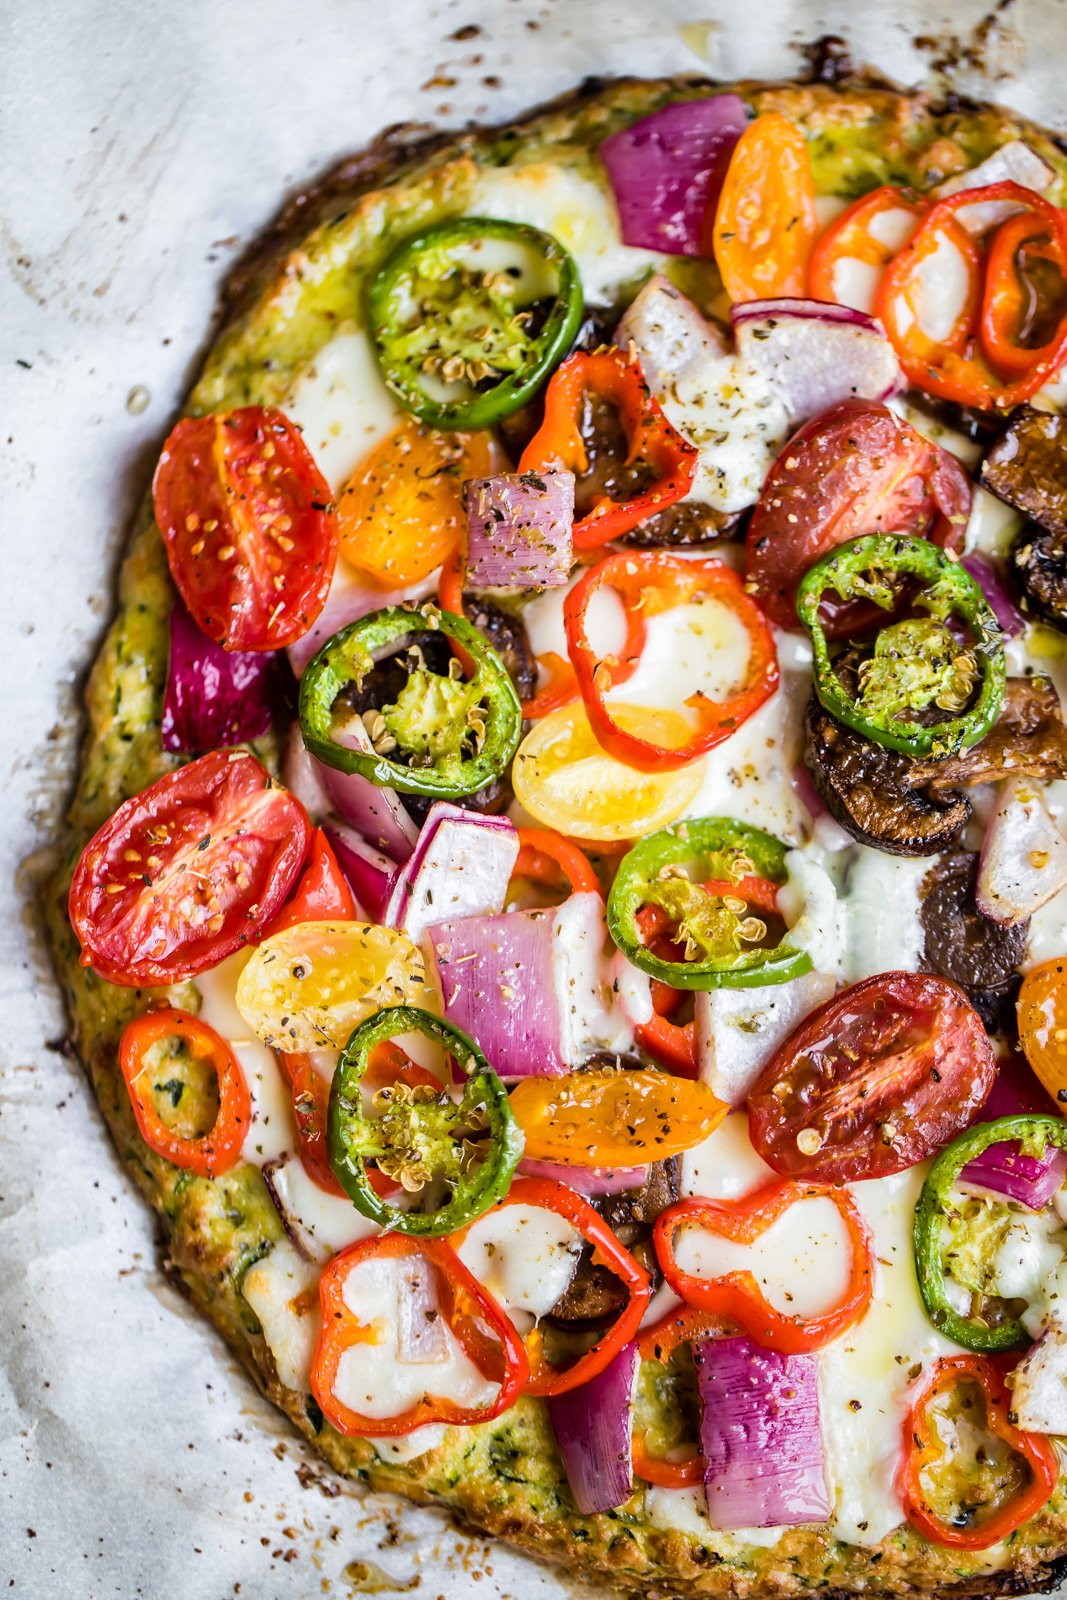 Absolutely delicious low carb zucchini pizza crust! Easy to make, gluten free, paleo-friendly and a great way to use up zucchini. This zucchini crust holds up well and can be topped whatever veggies or meat you'd like. Ready in only 20 minutes!